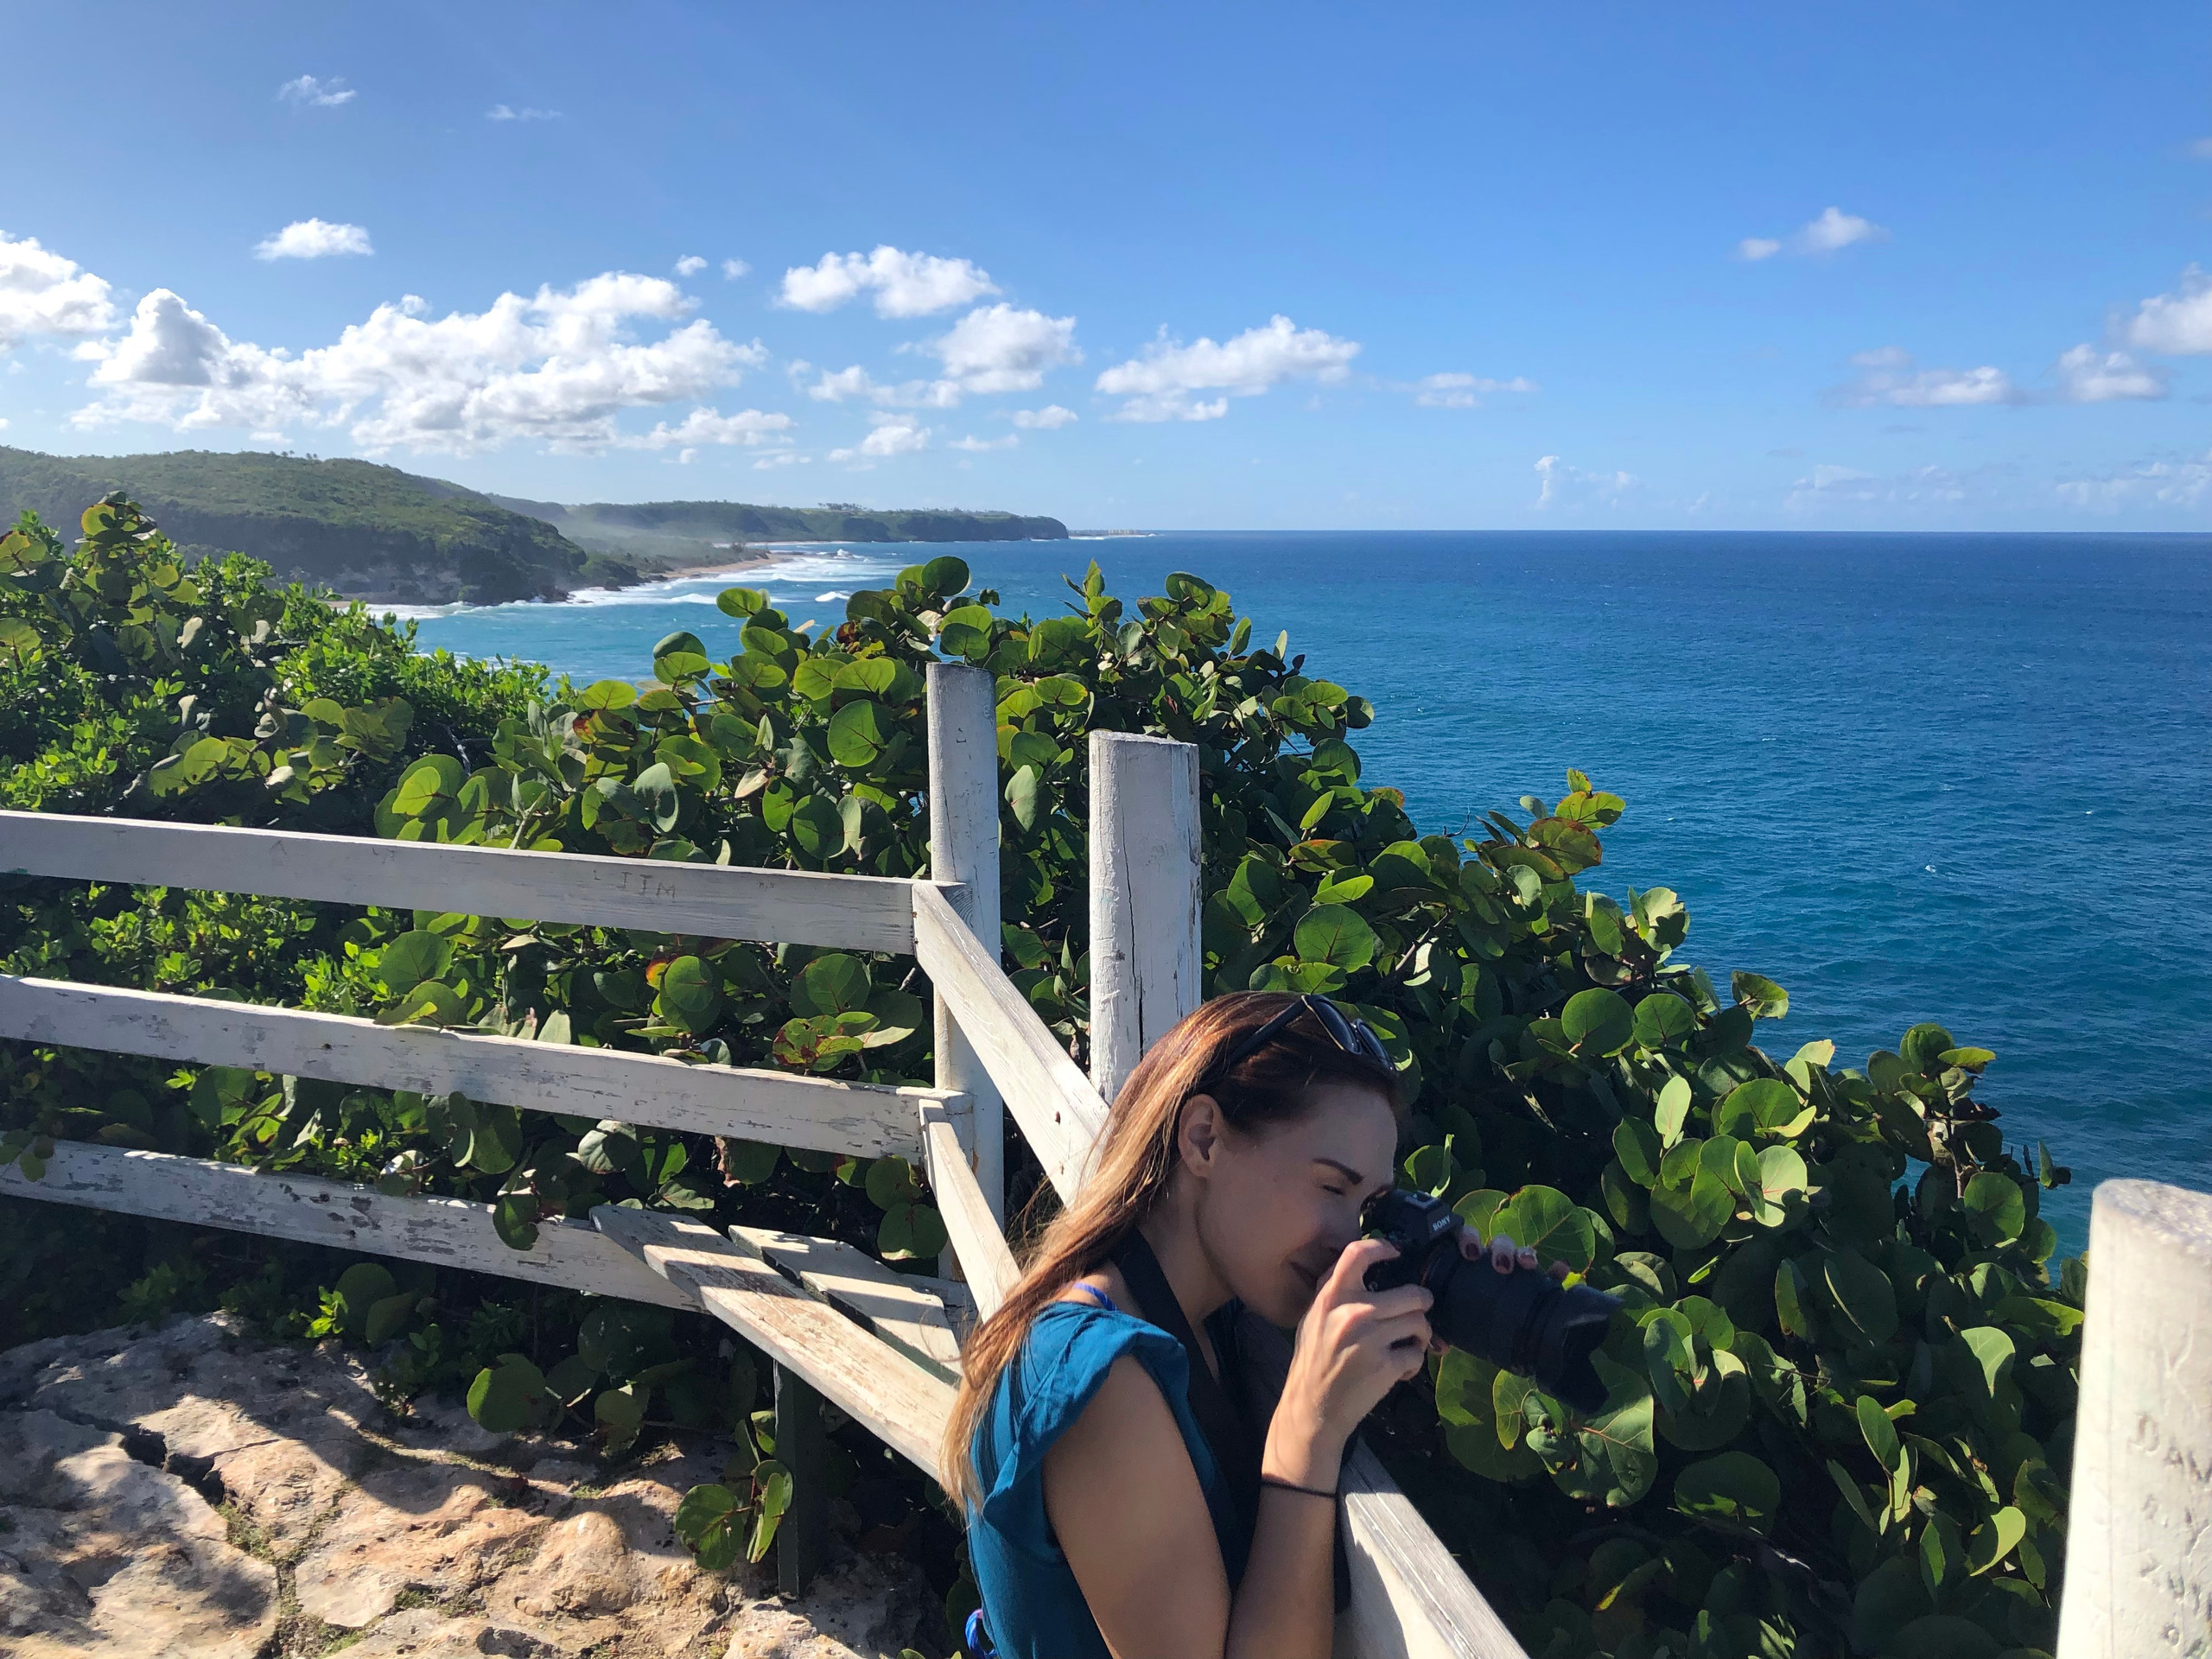 Photographer takes picture of scenic view puerto rico